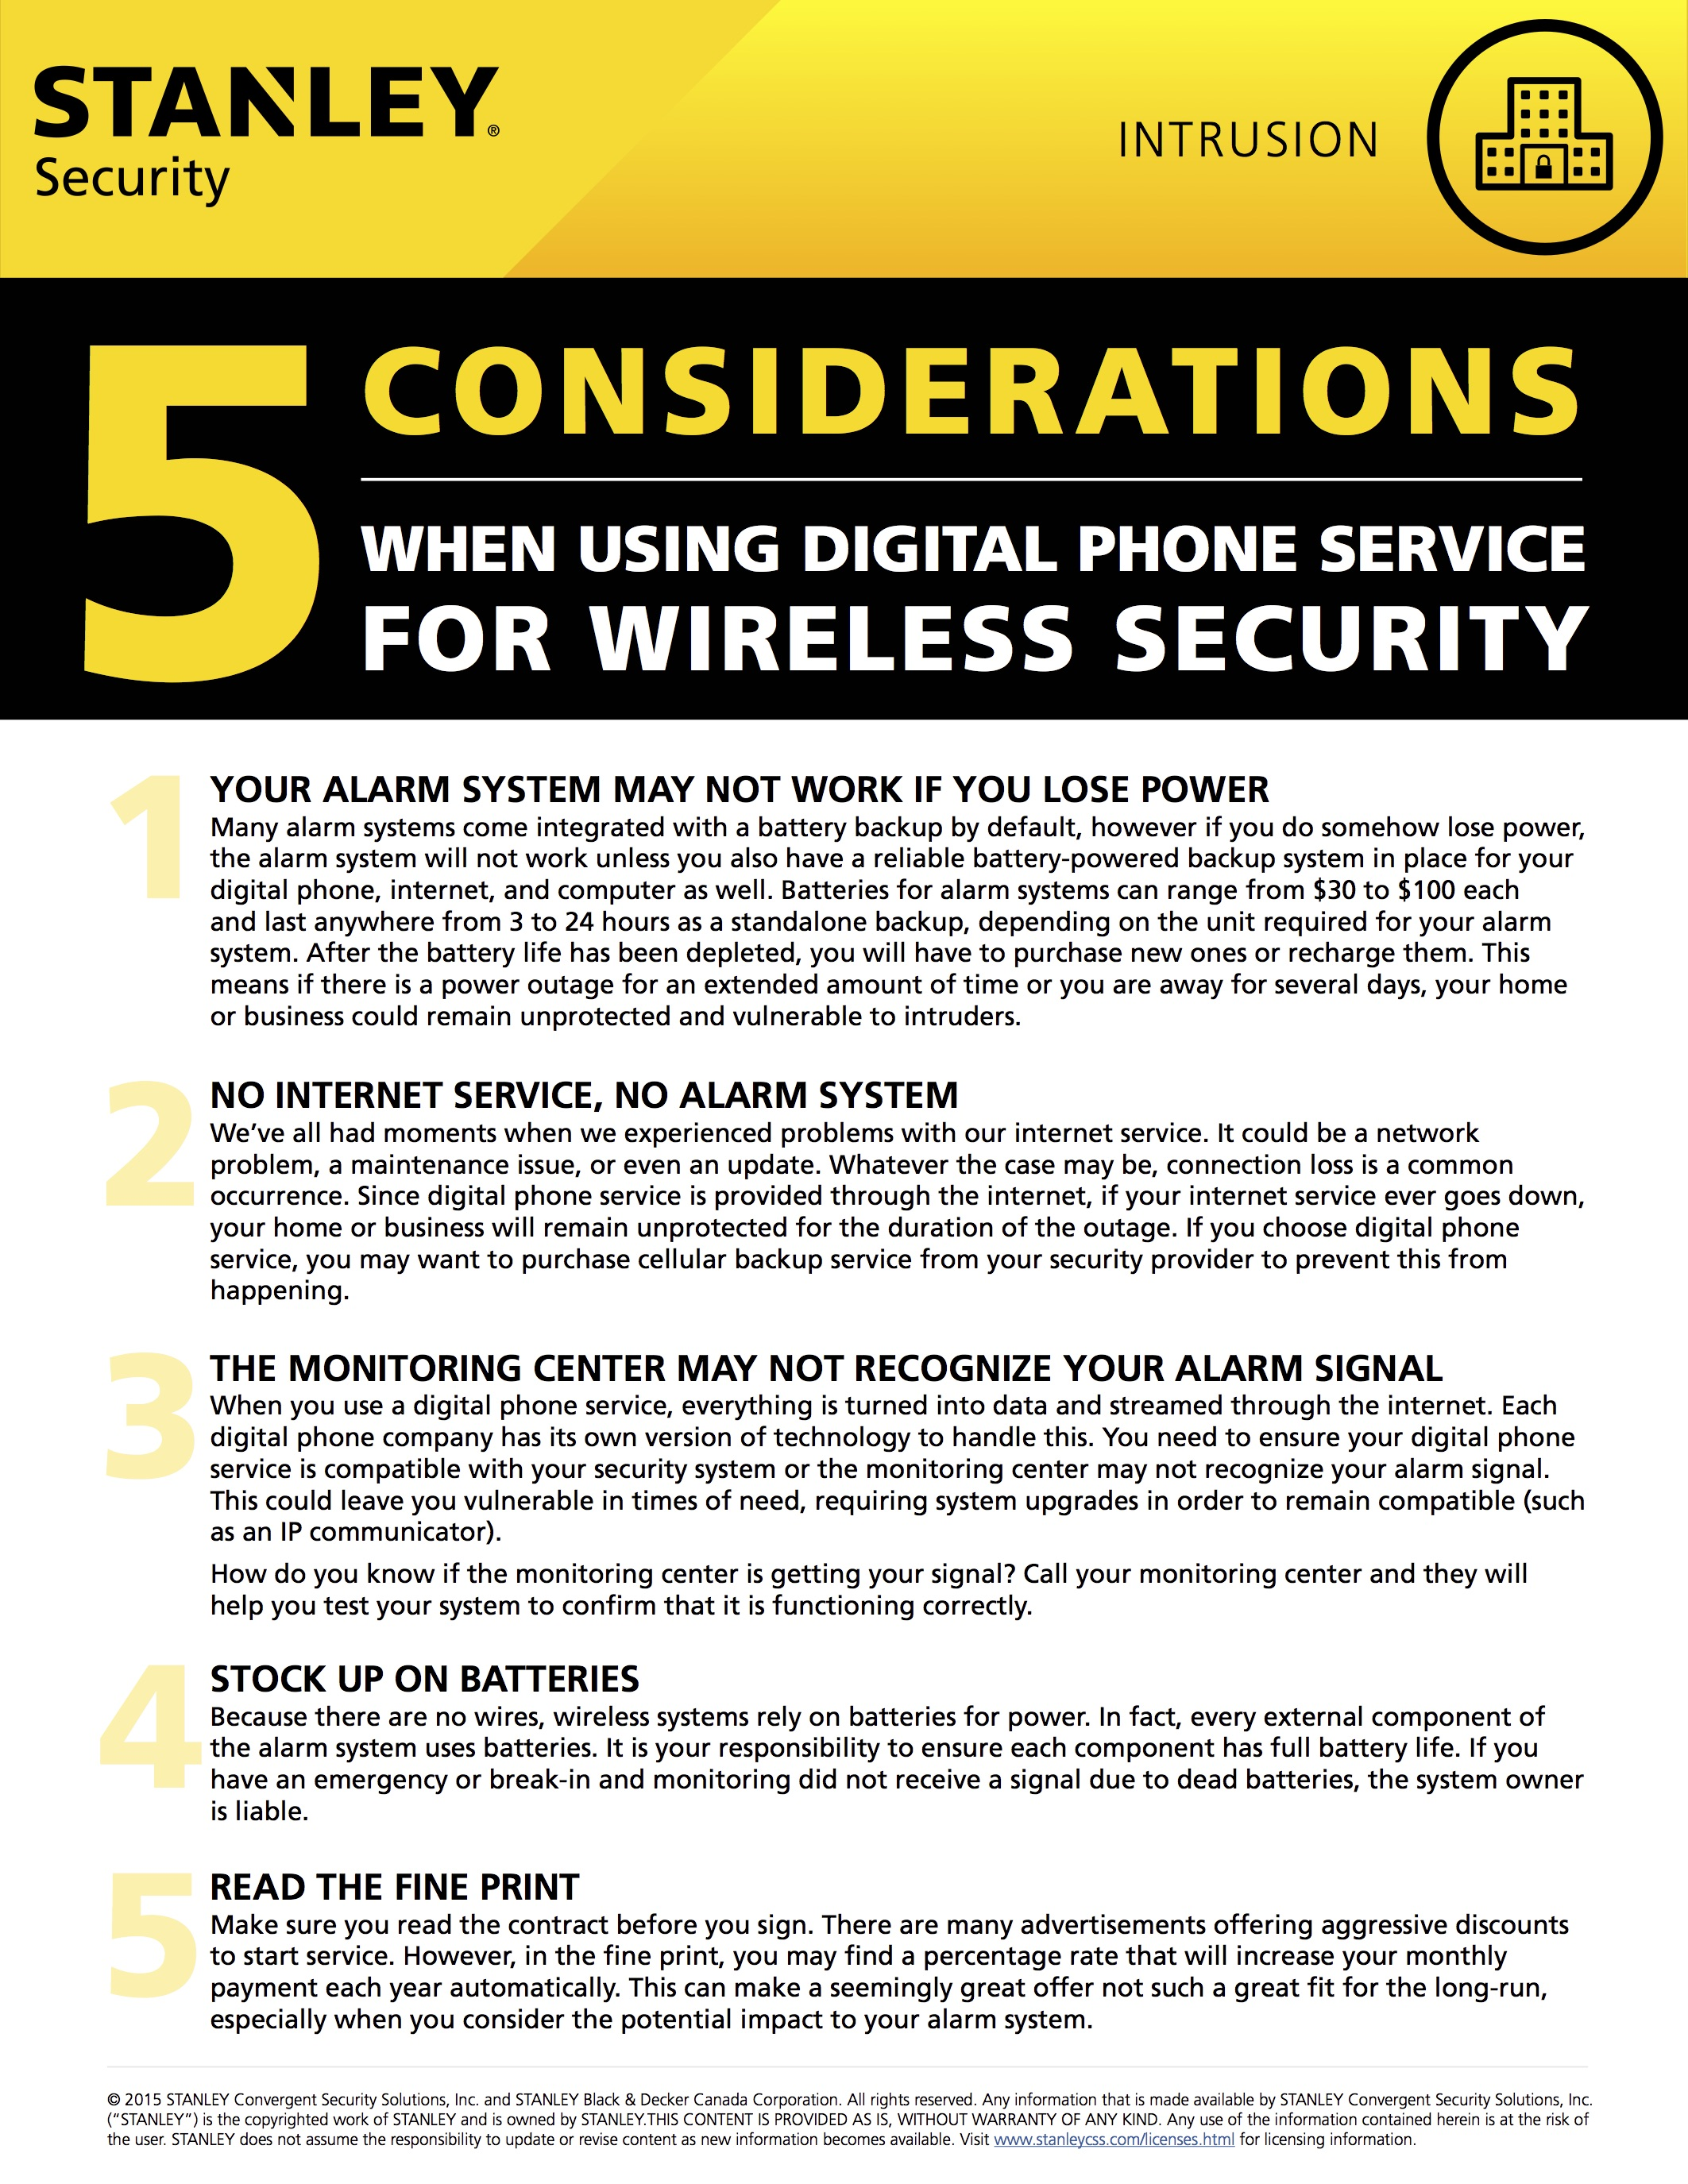 5 Considerations When Using Digital Phone Service for Wireless Security